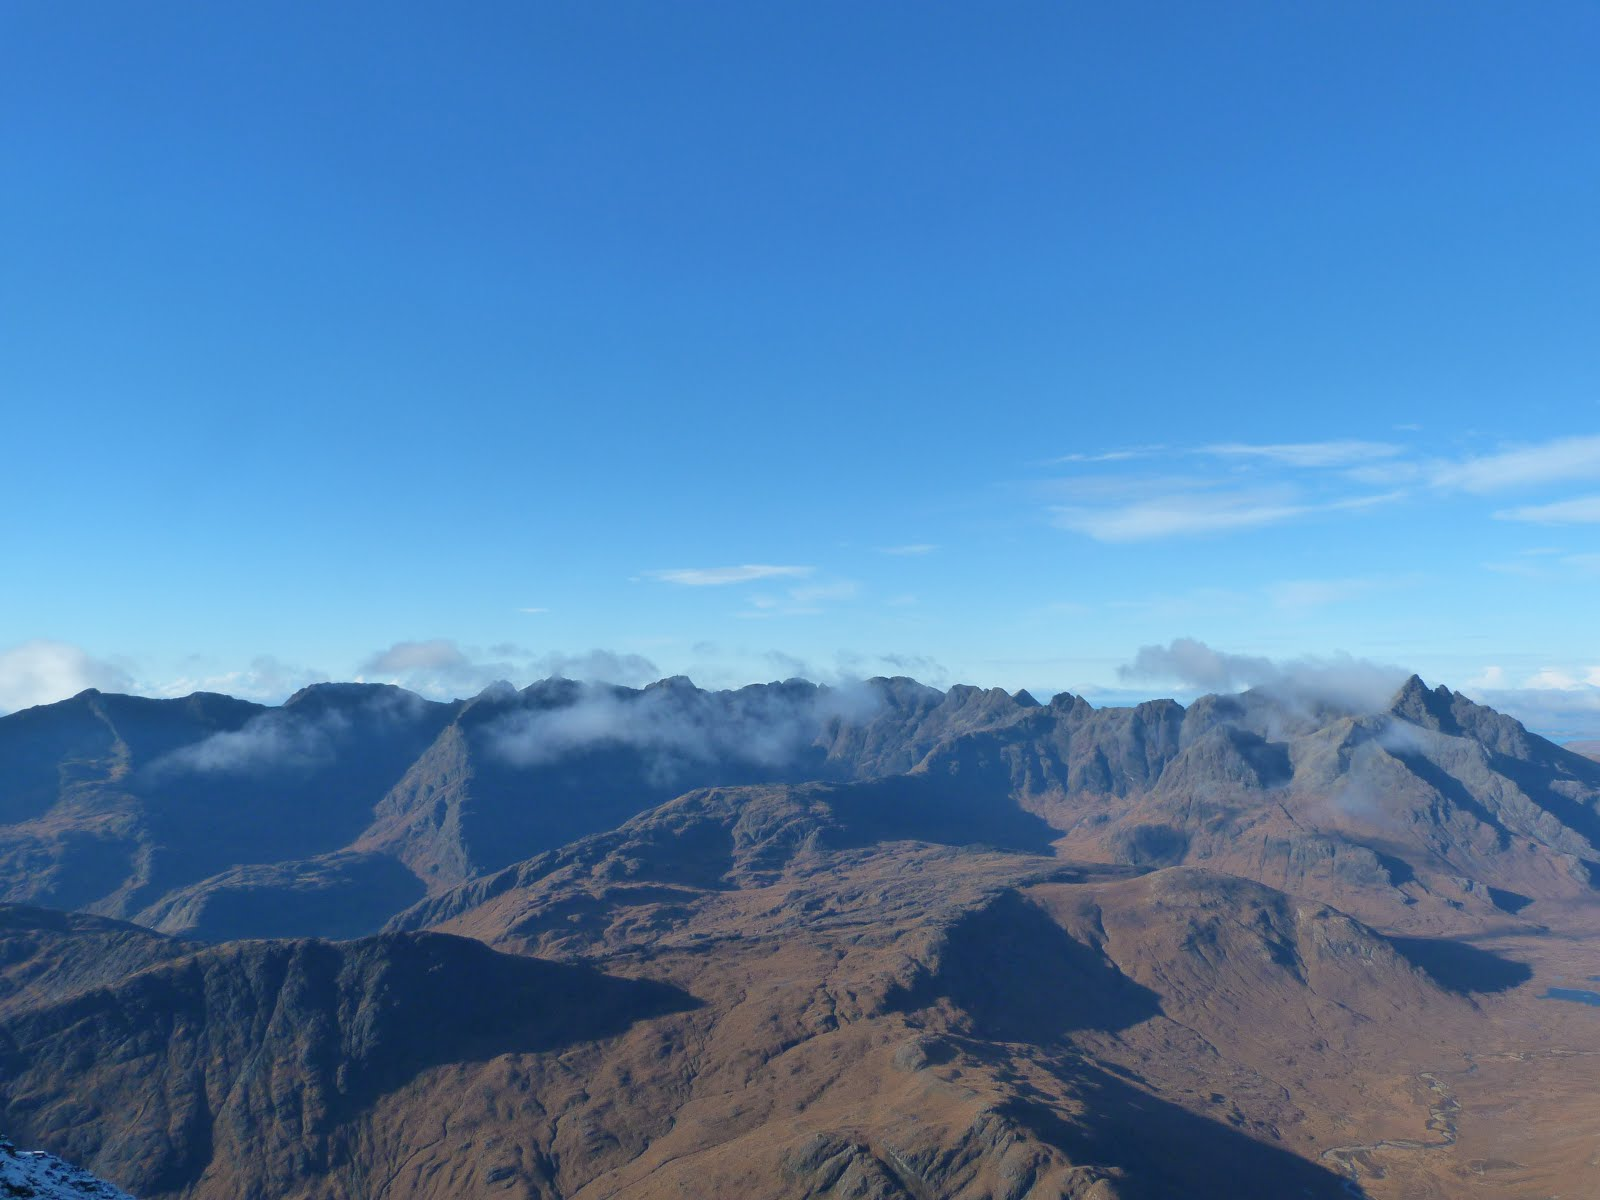 Isle of Skye (Cuillin mountains)